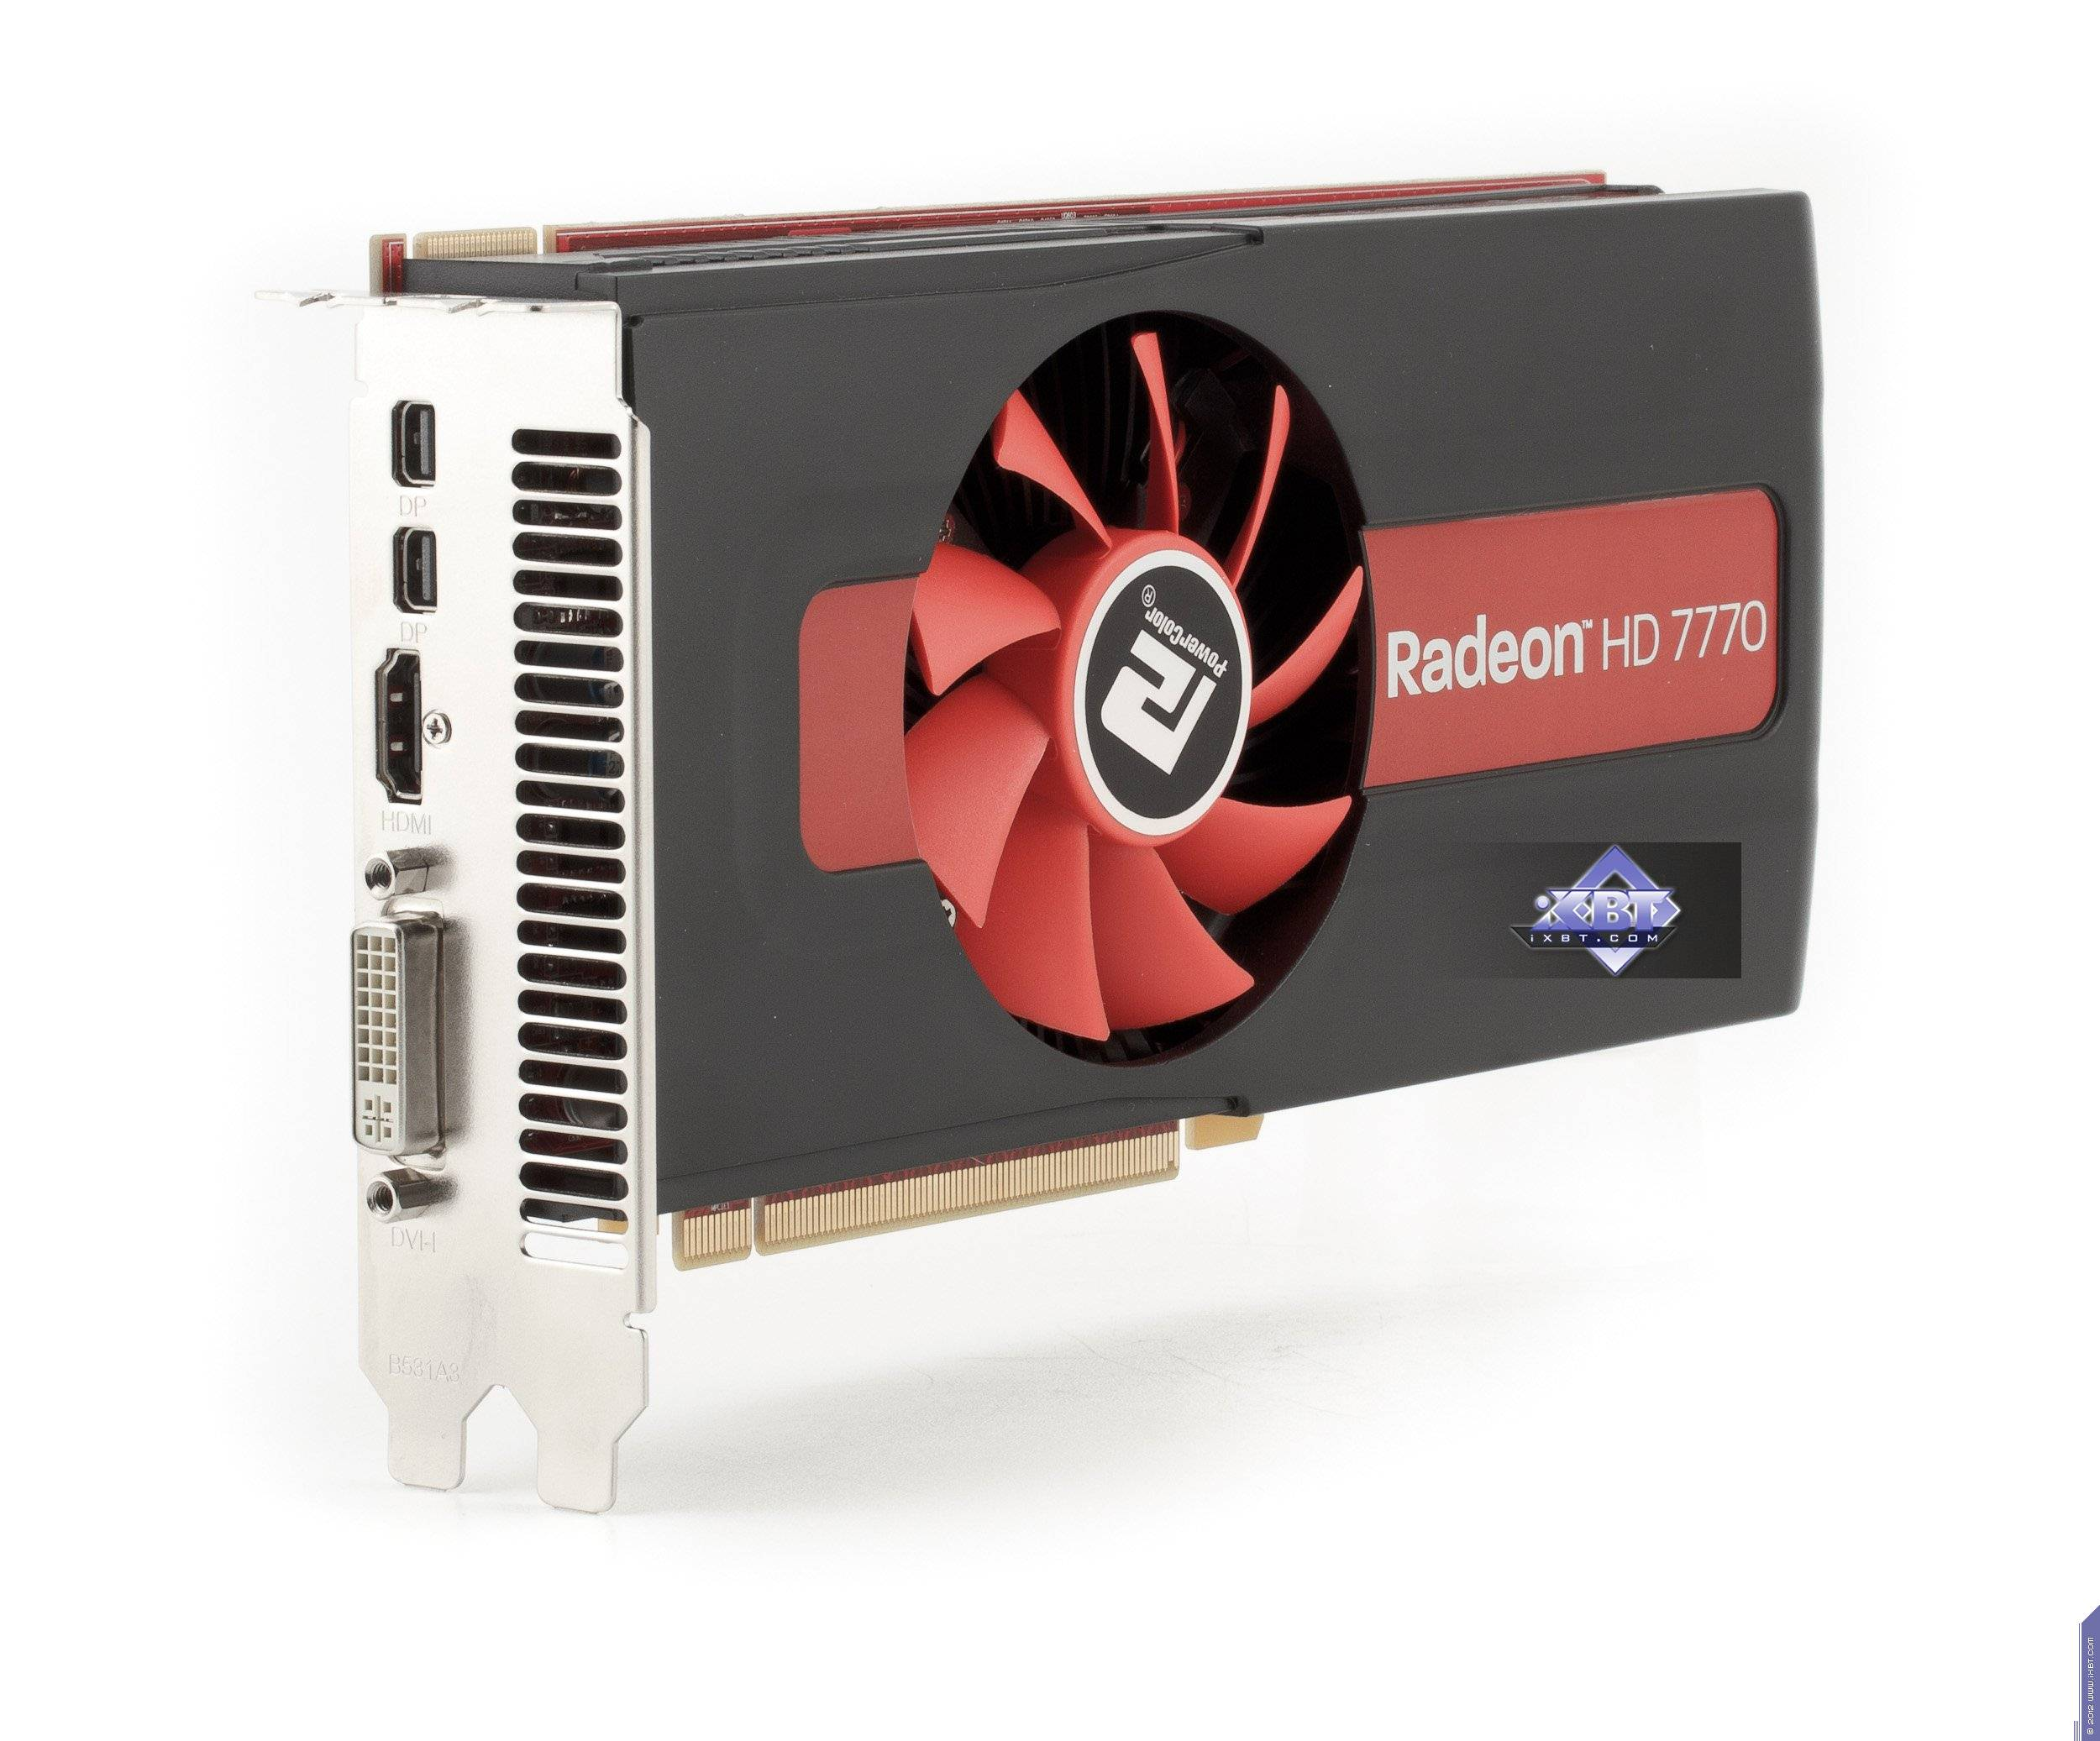 Radeon Hd 7770 Driver Download Windows 7